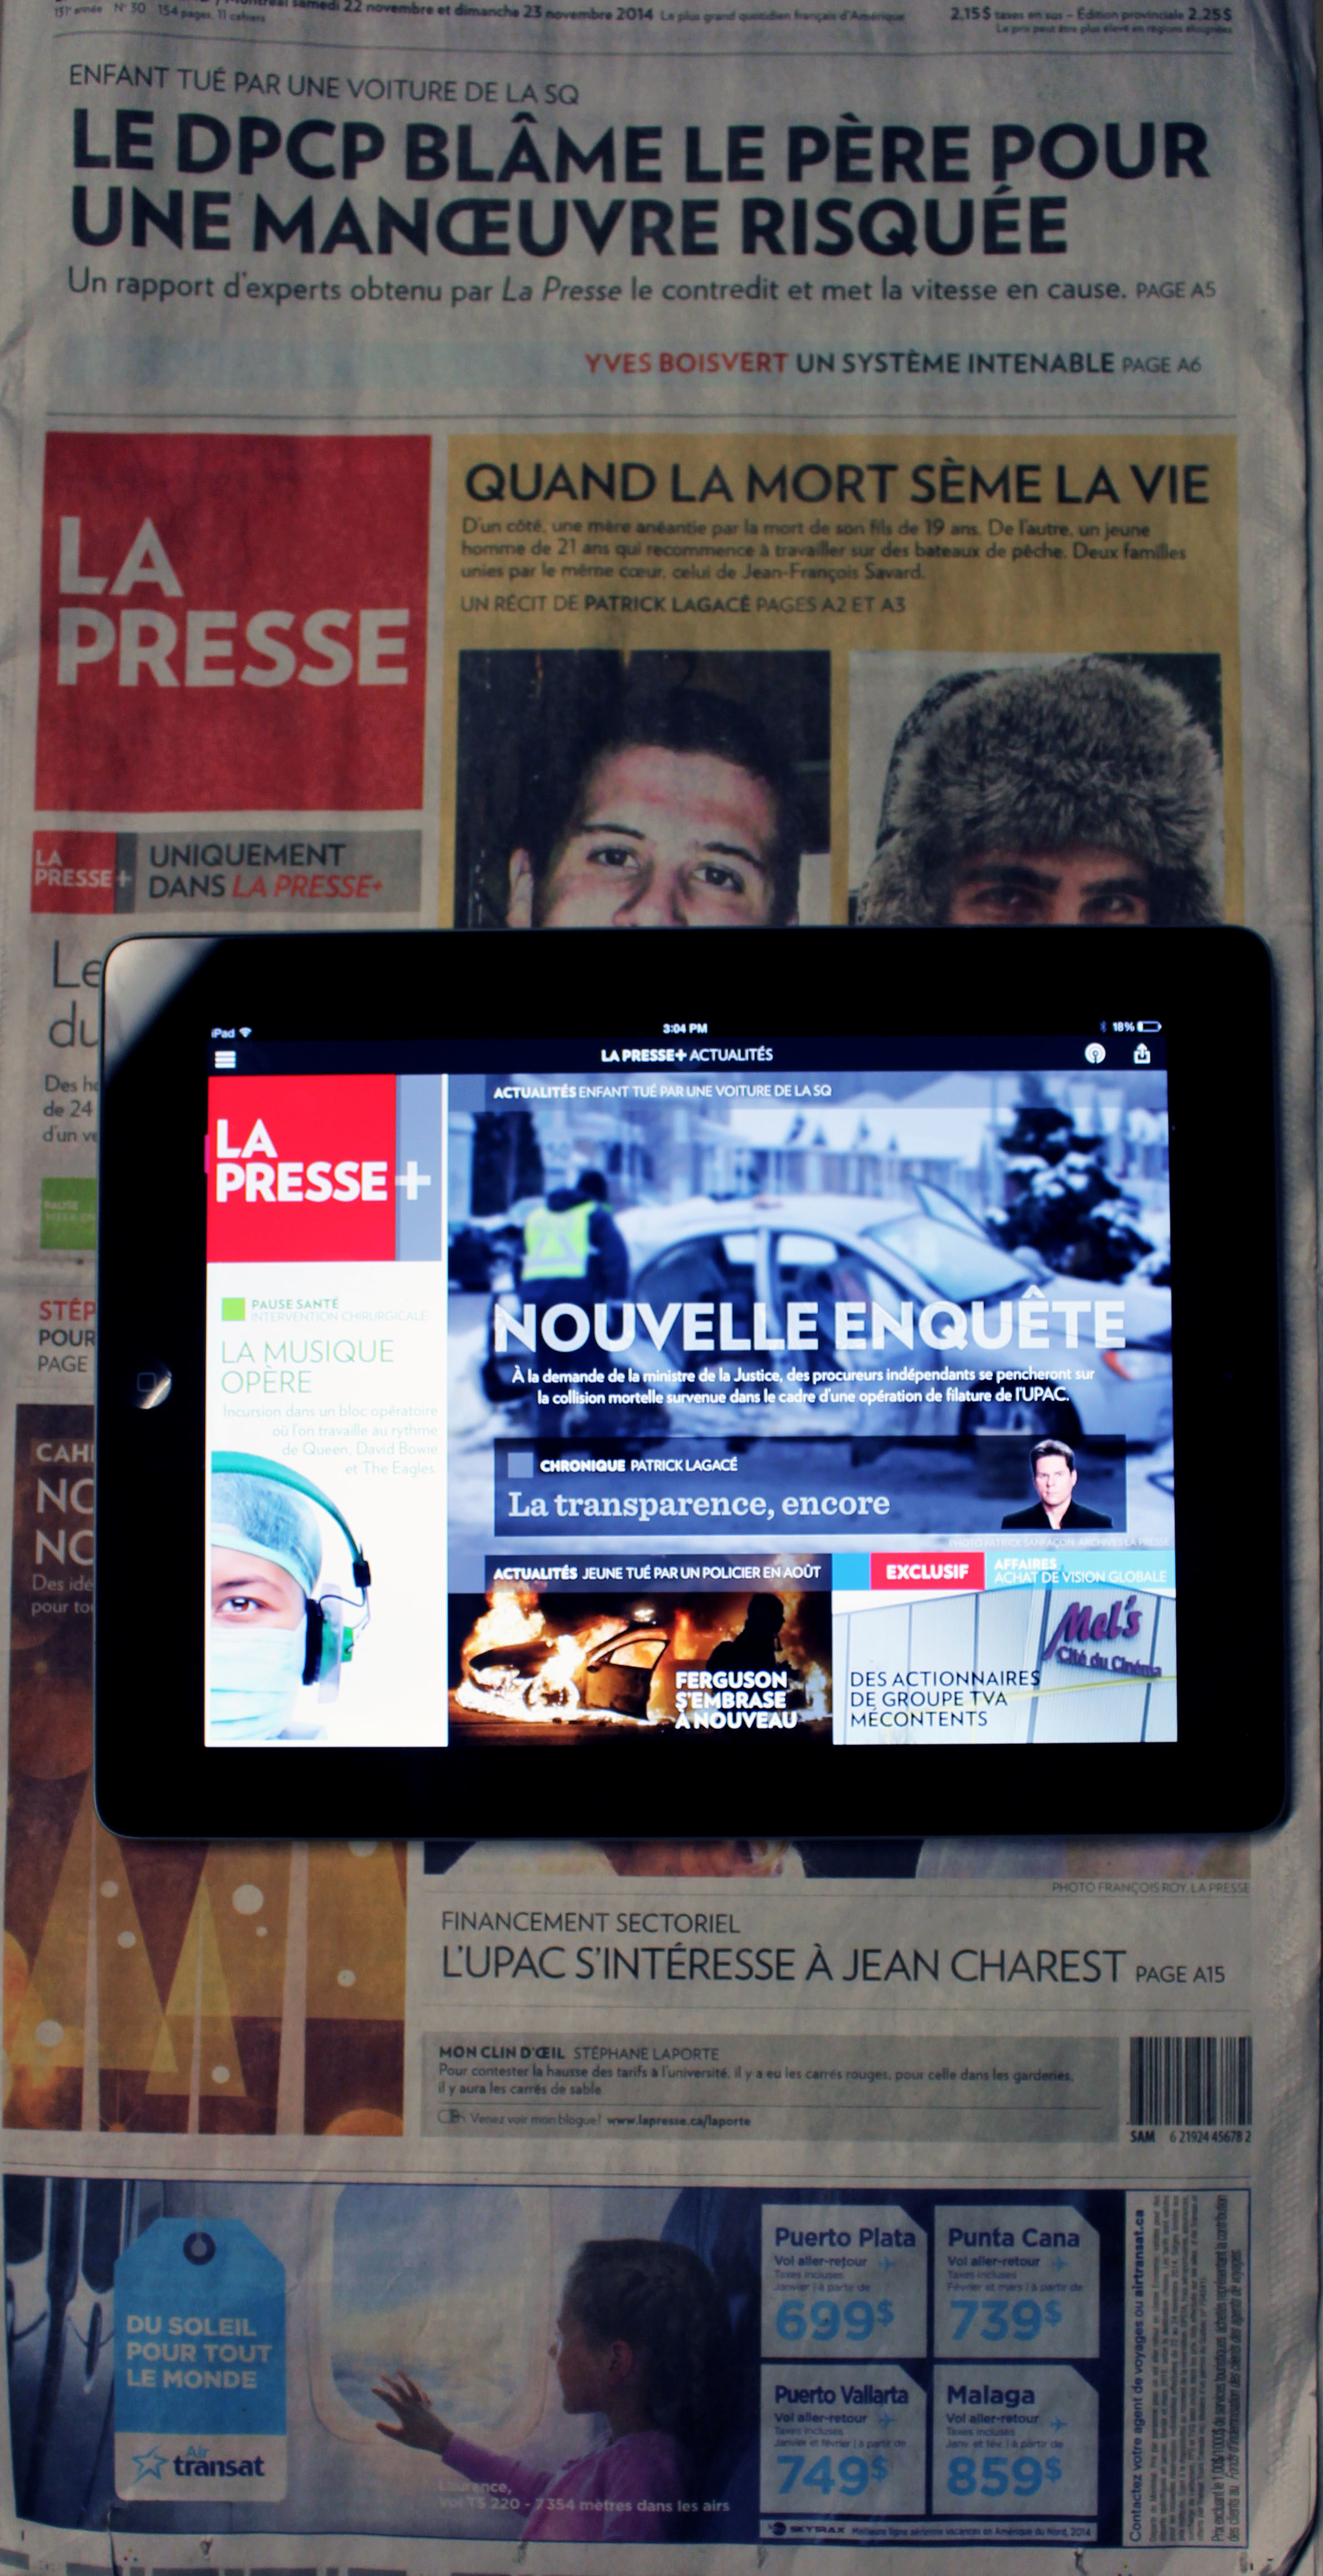 La Presse Newspaper and website on iPad